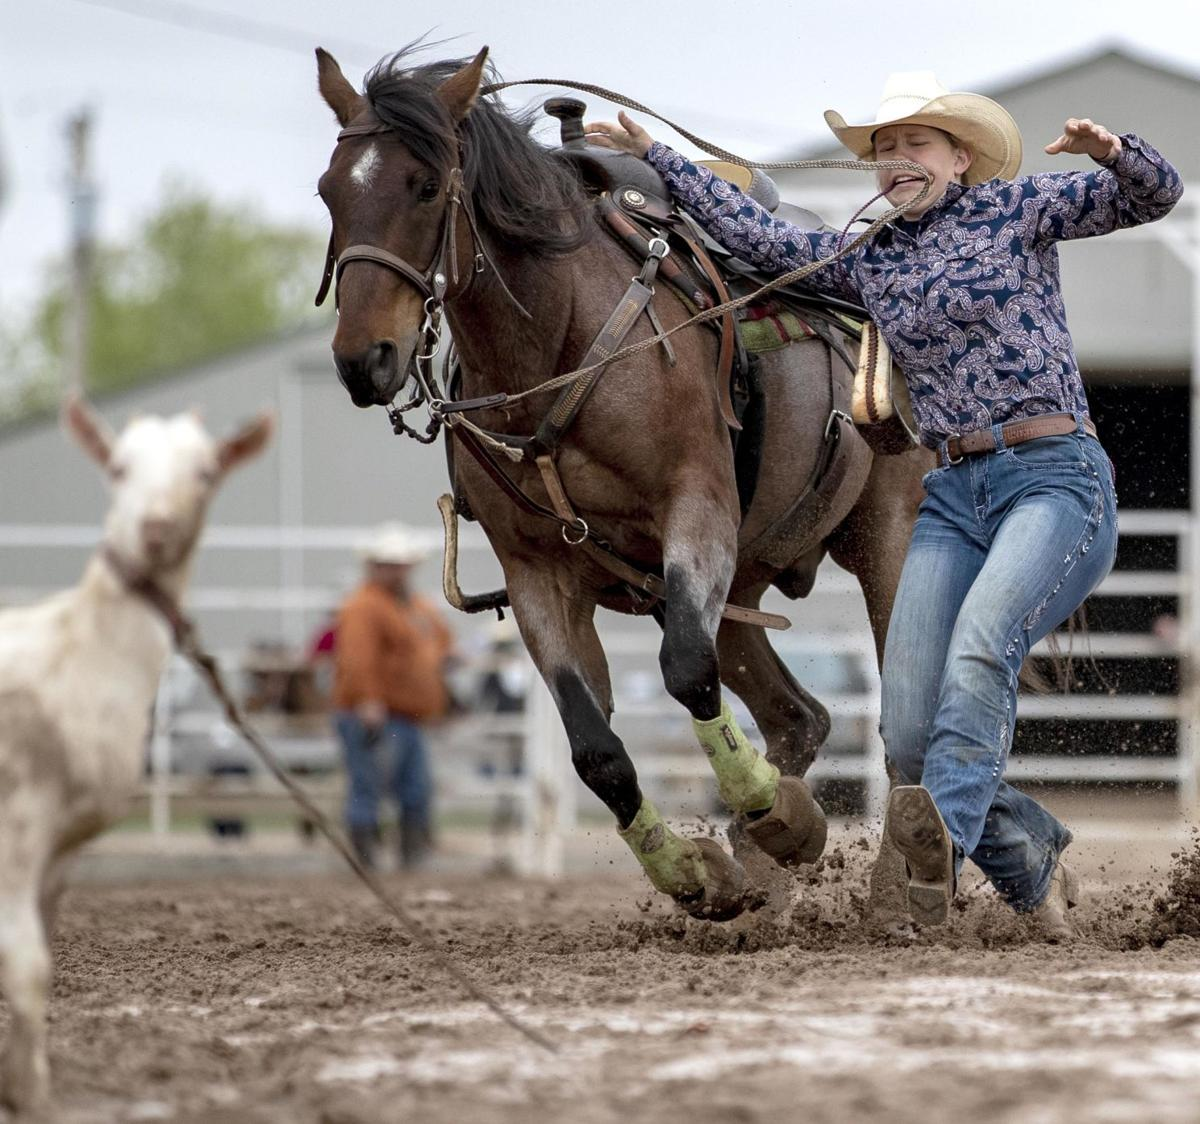 Chomping at the bit: Teens ready to ride in national rodeo